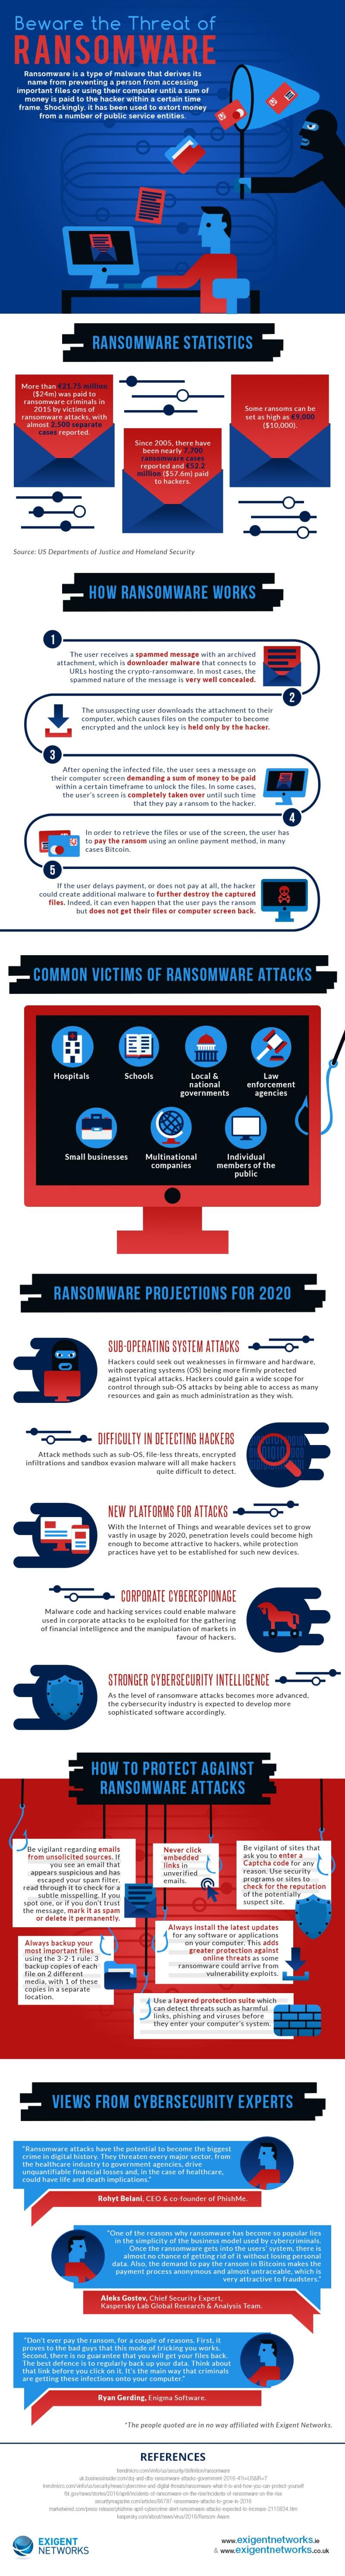 Beware of the Threat of Ransomware - YourDailyTech